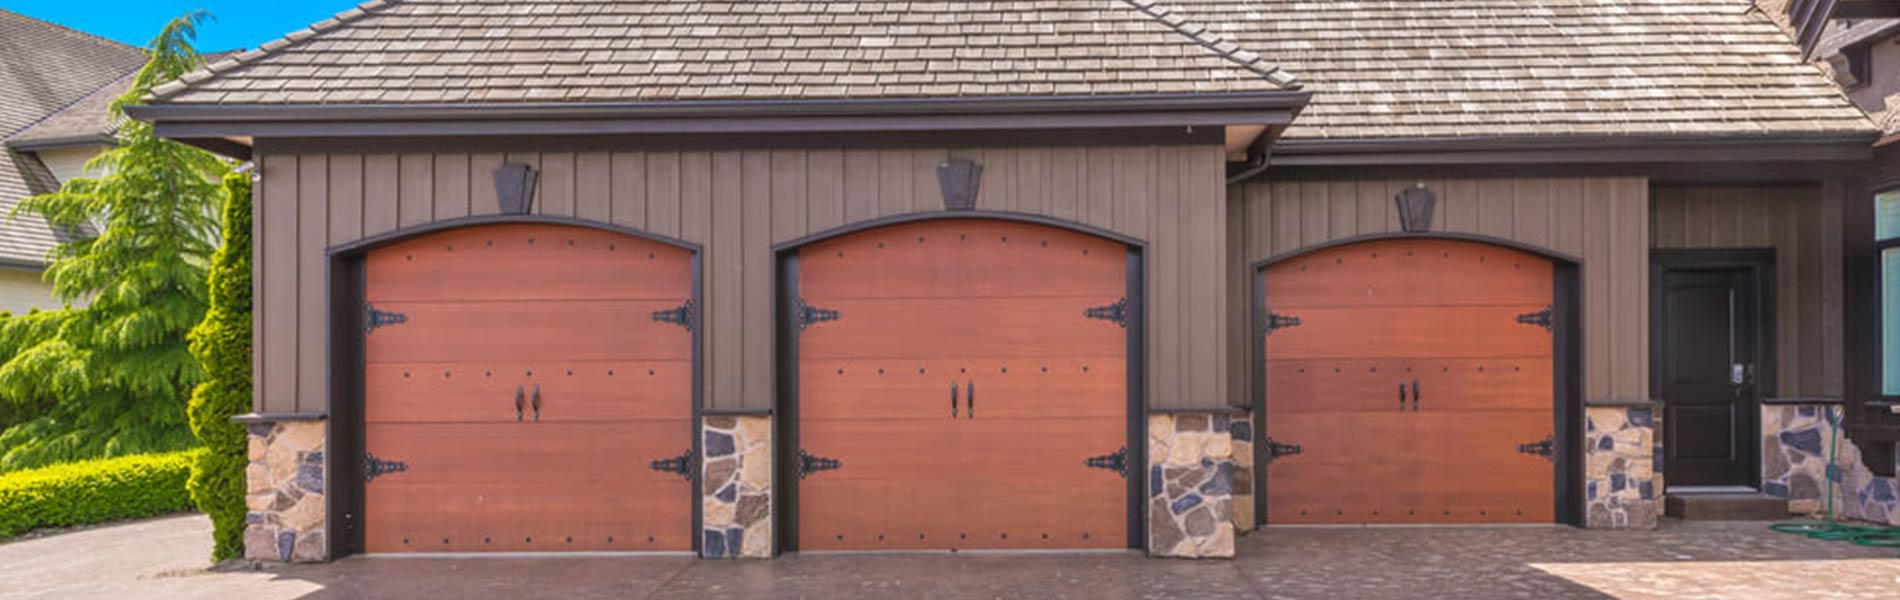 Golden Garage Door Service, Millbrae, CA 650-889-4044